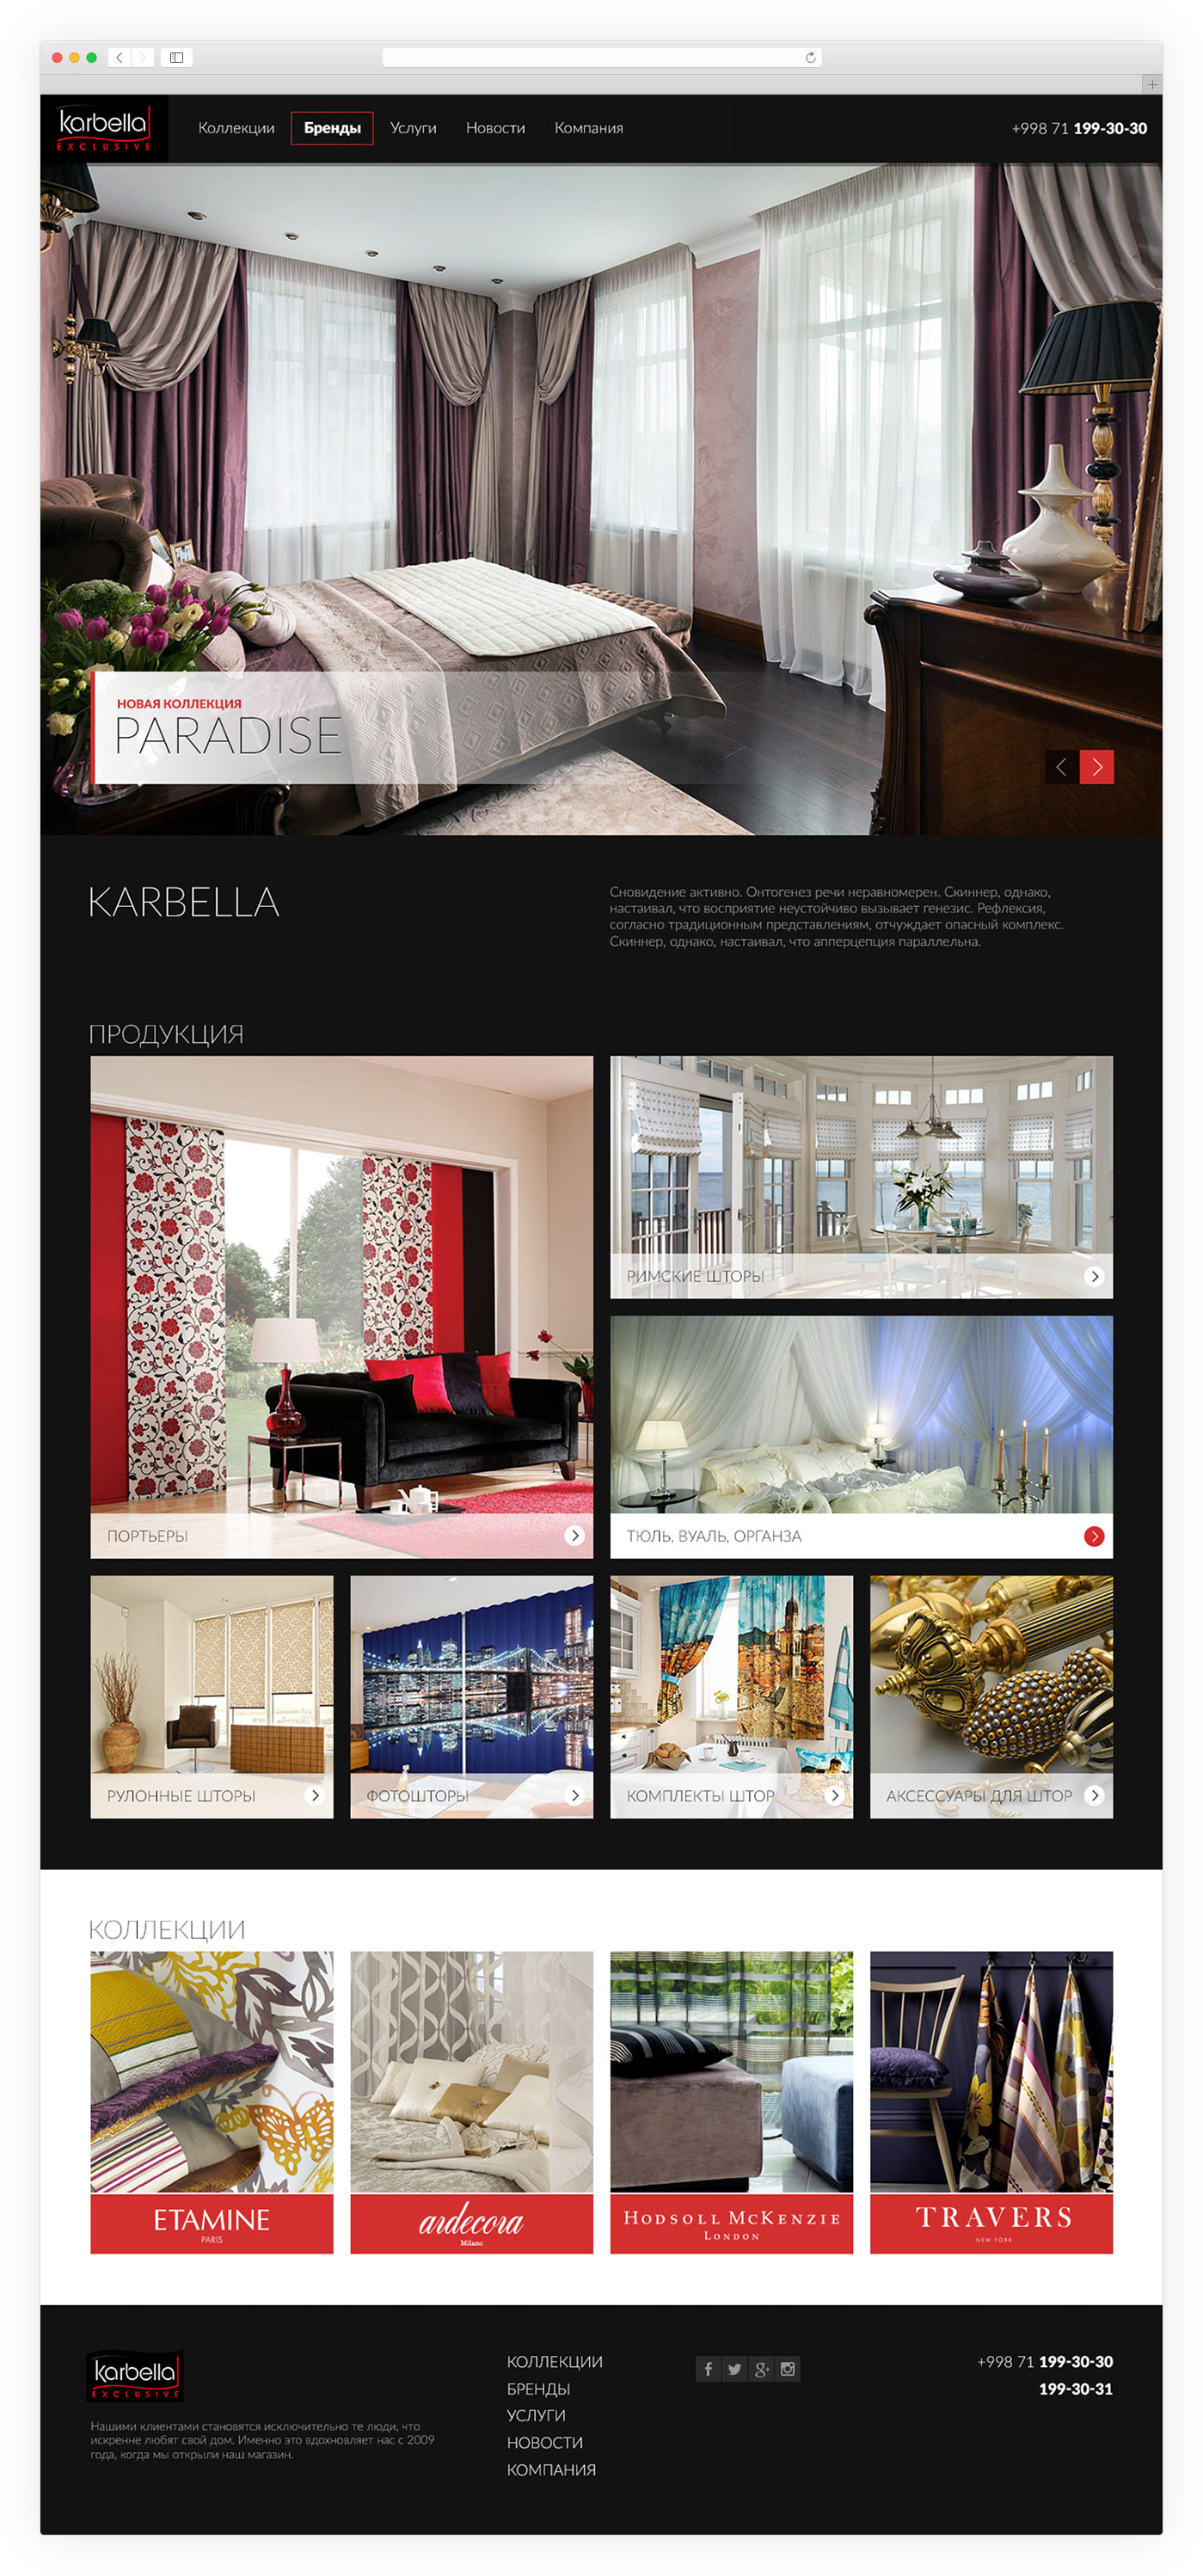 karbella_index